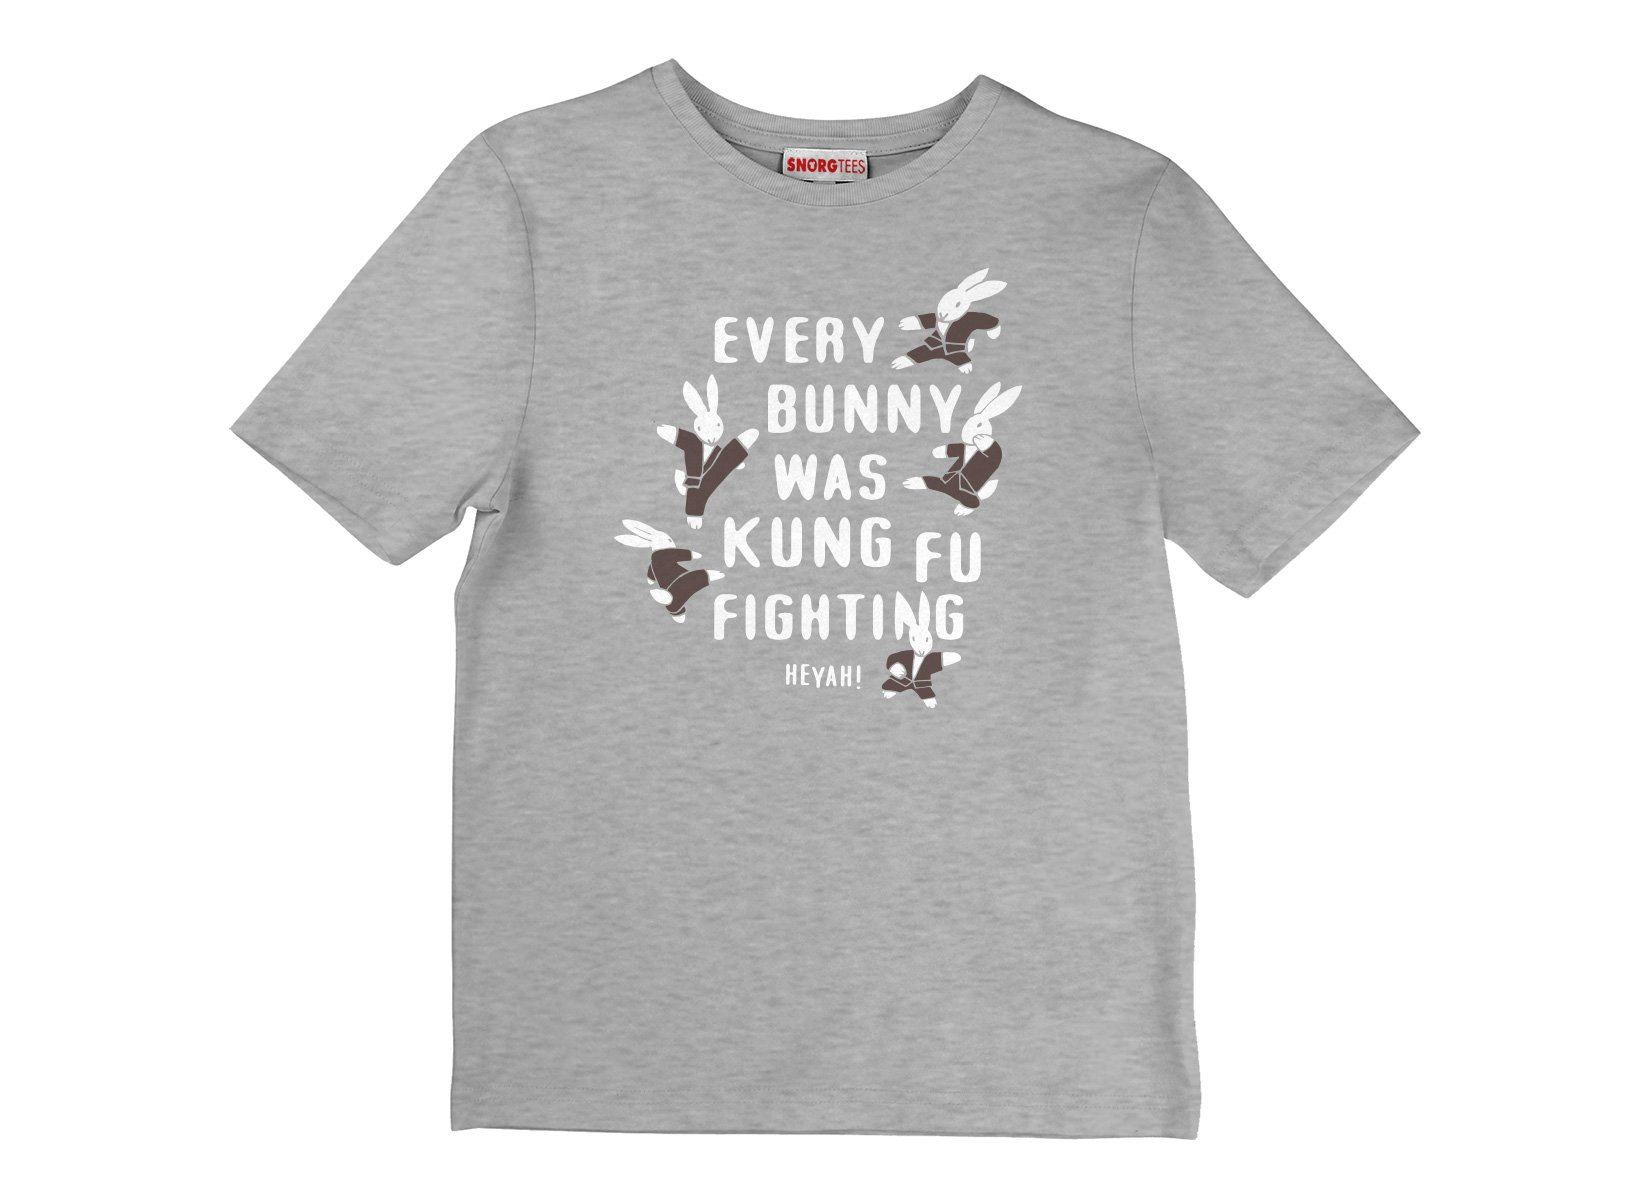 Every Bunny Was Kung Fu Fighting on Kids T-Shirt